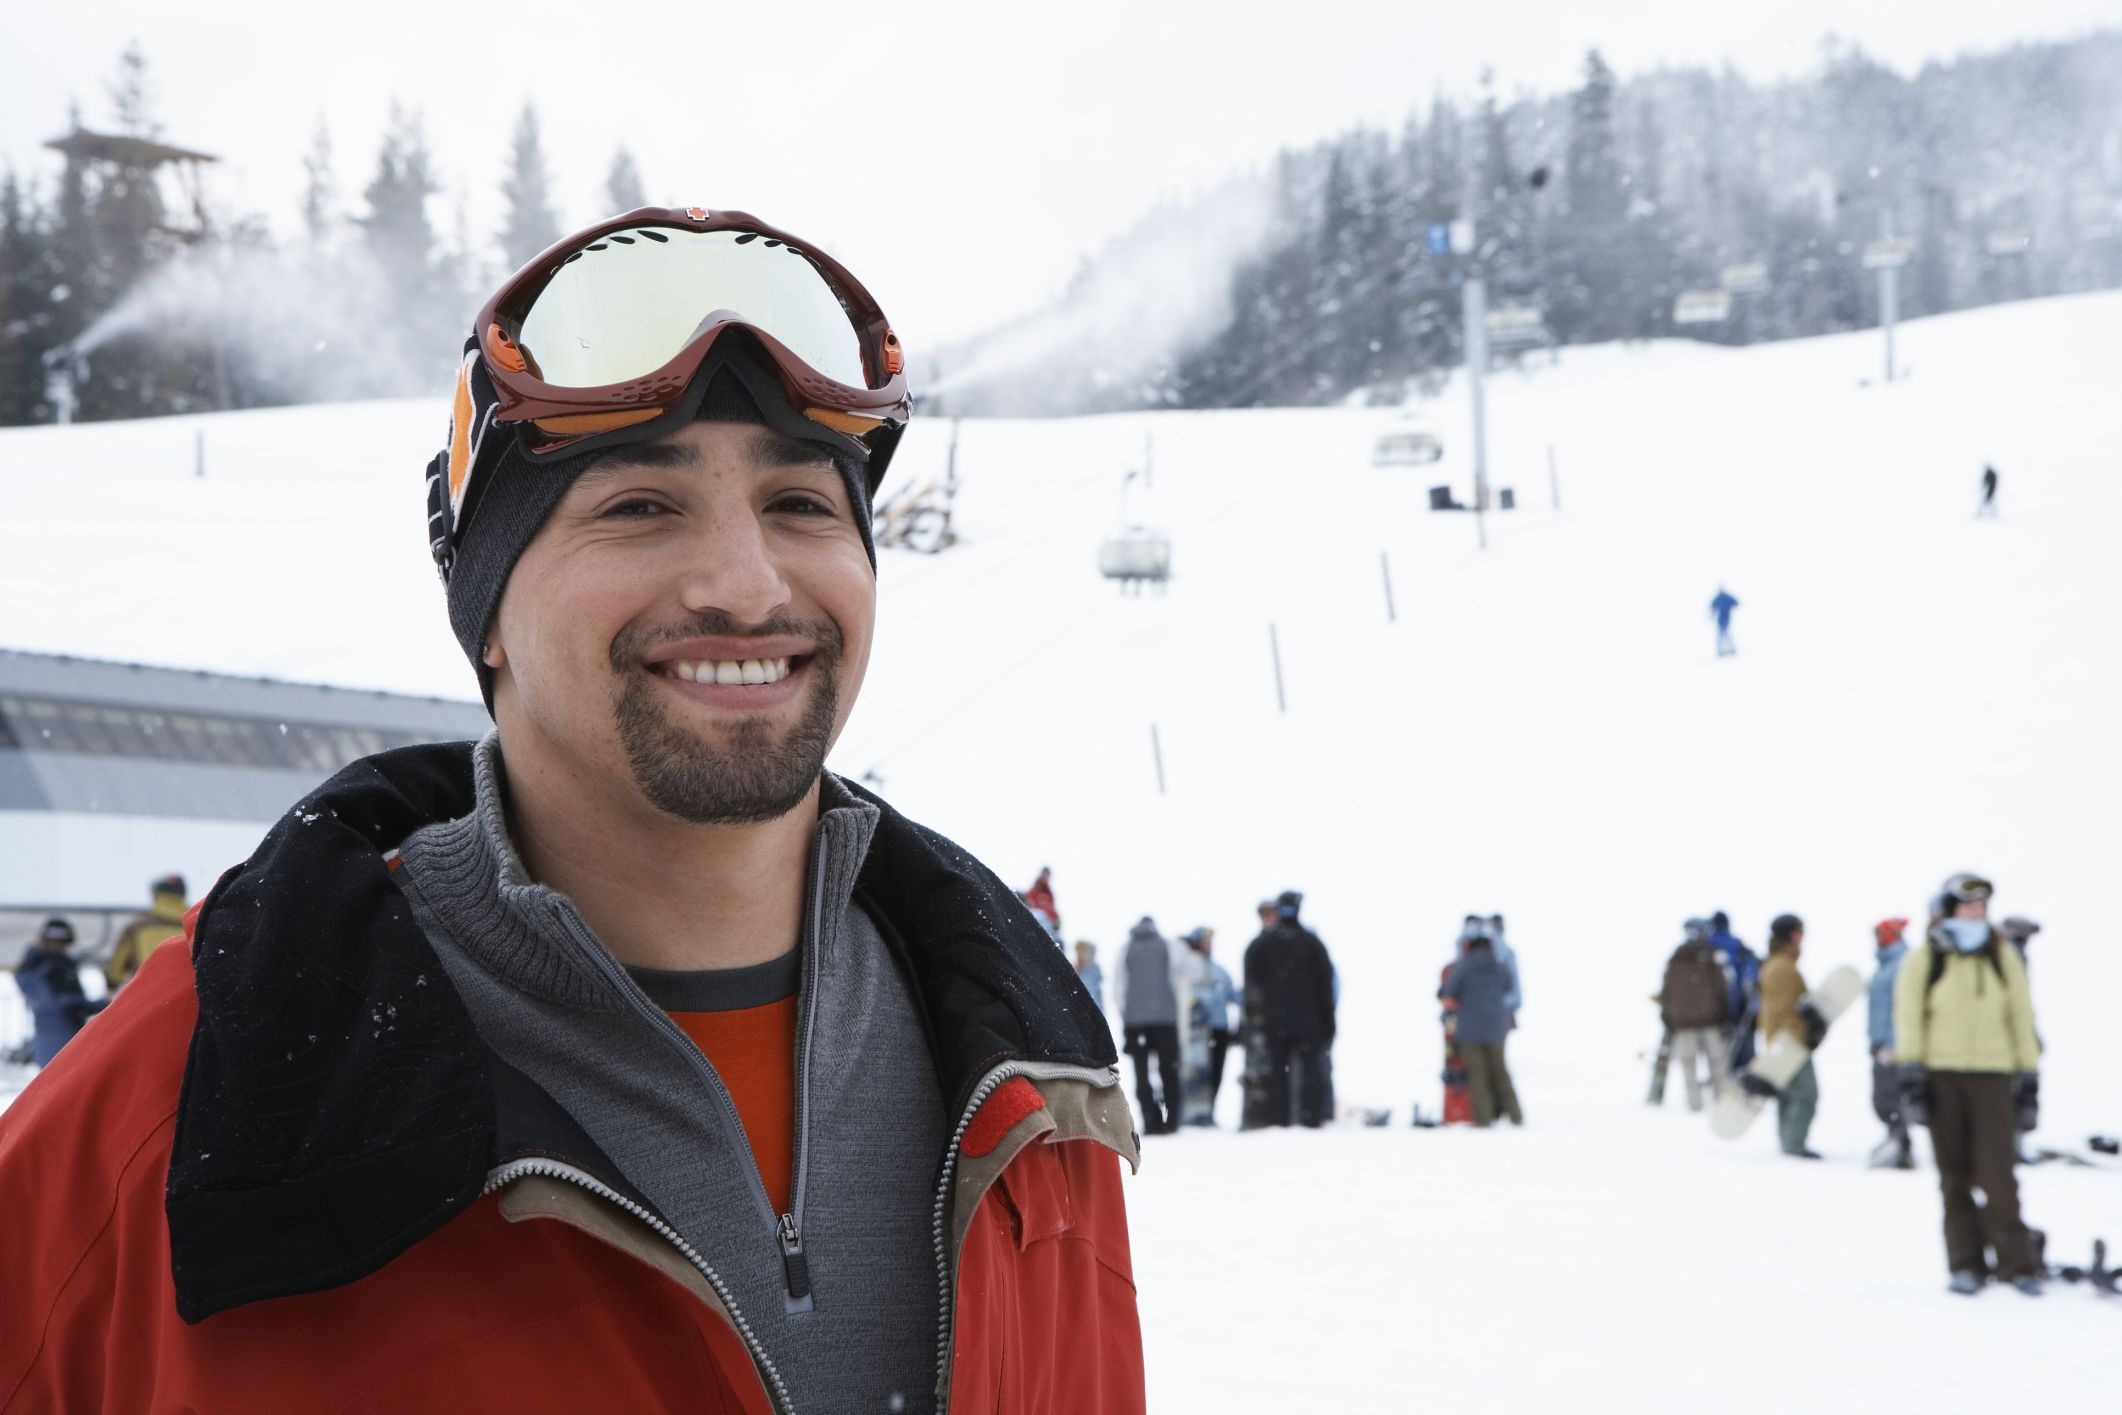 Man standing near ski lift at base of mountain with layered clothing